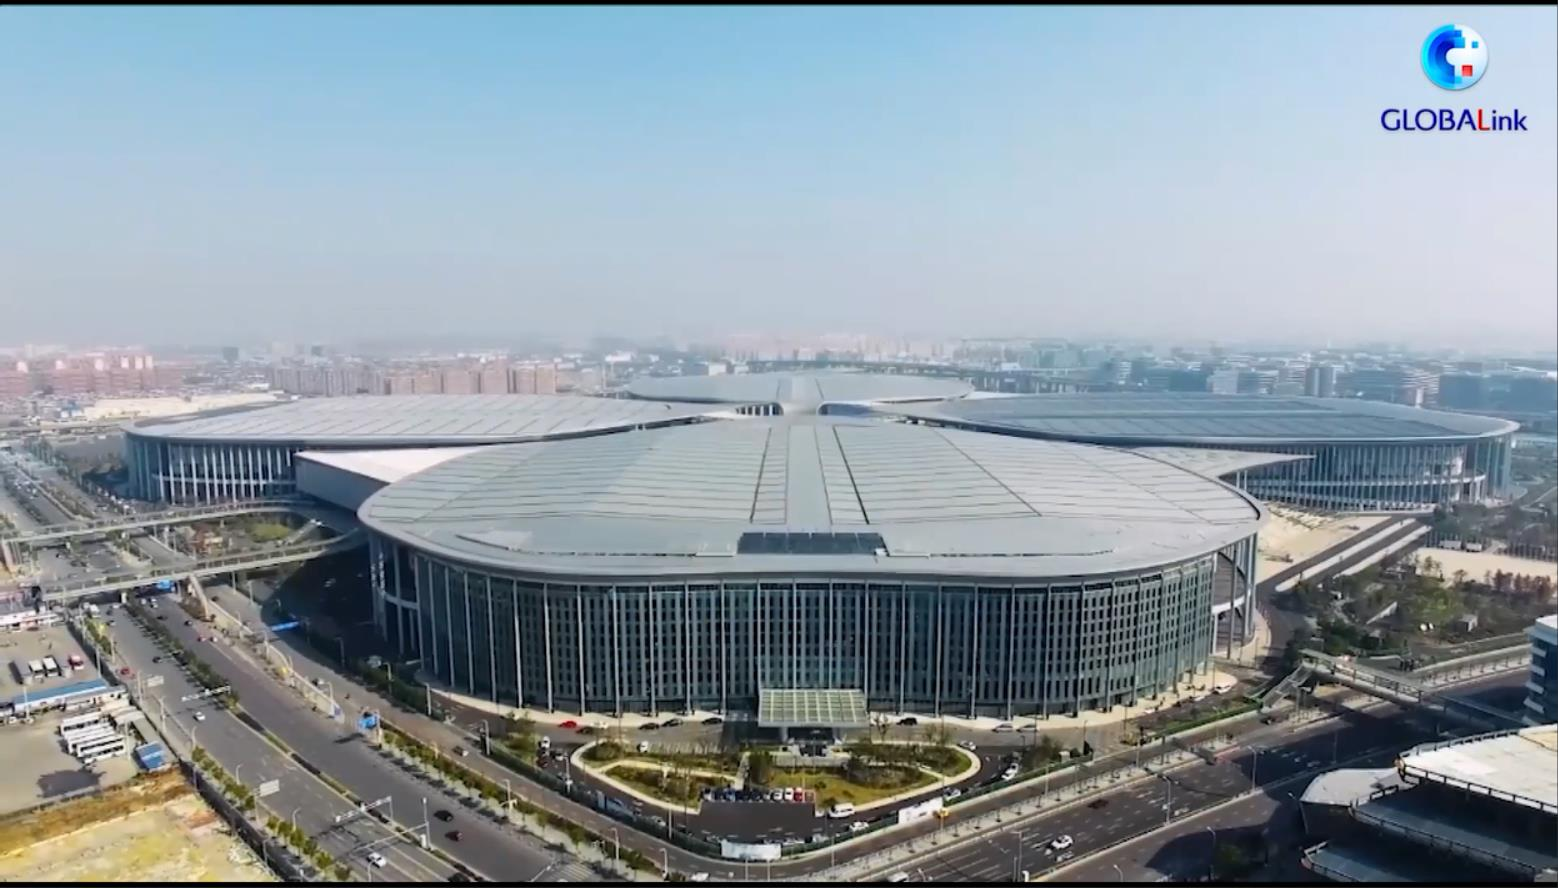 GLOBALink | European businesses covet Chinese market amid global COVID-19 impact